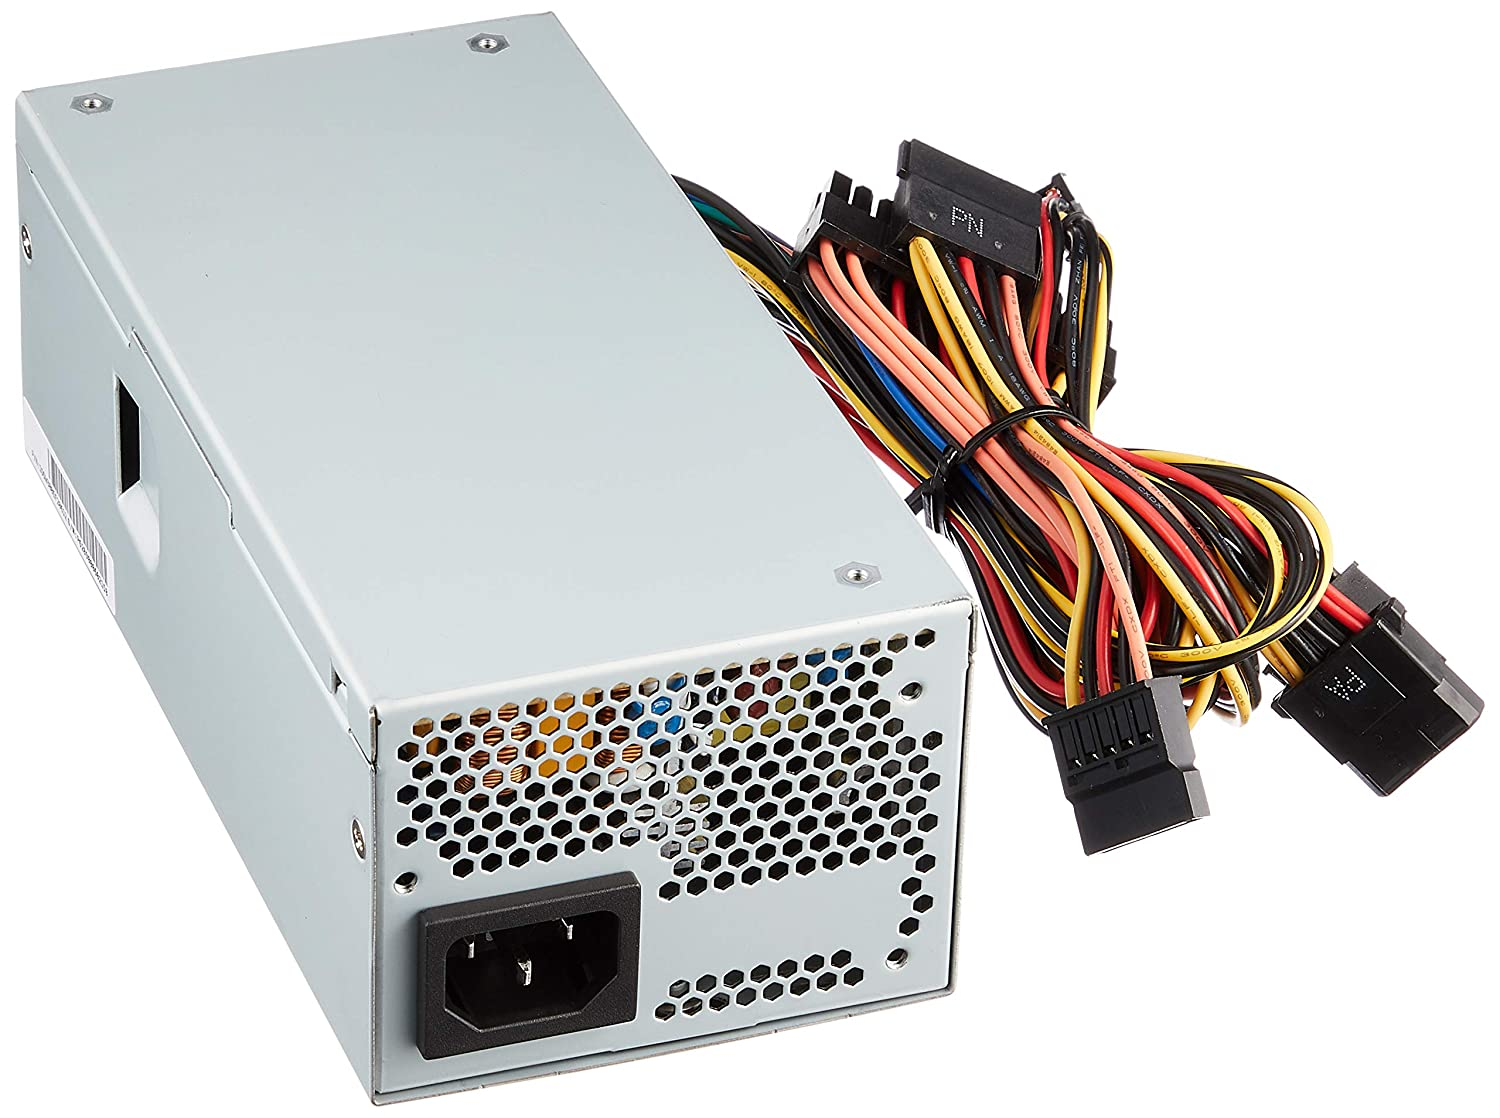 IN WIN Development Powersupply IP-S300EF7-2 H for the BP655 300Watt